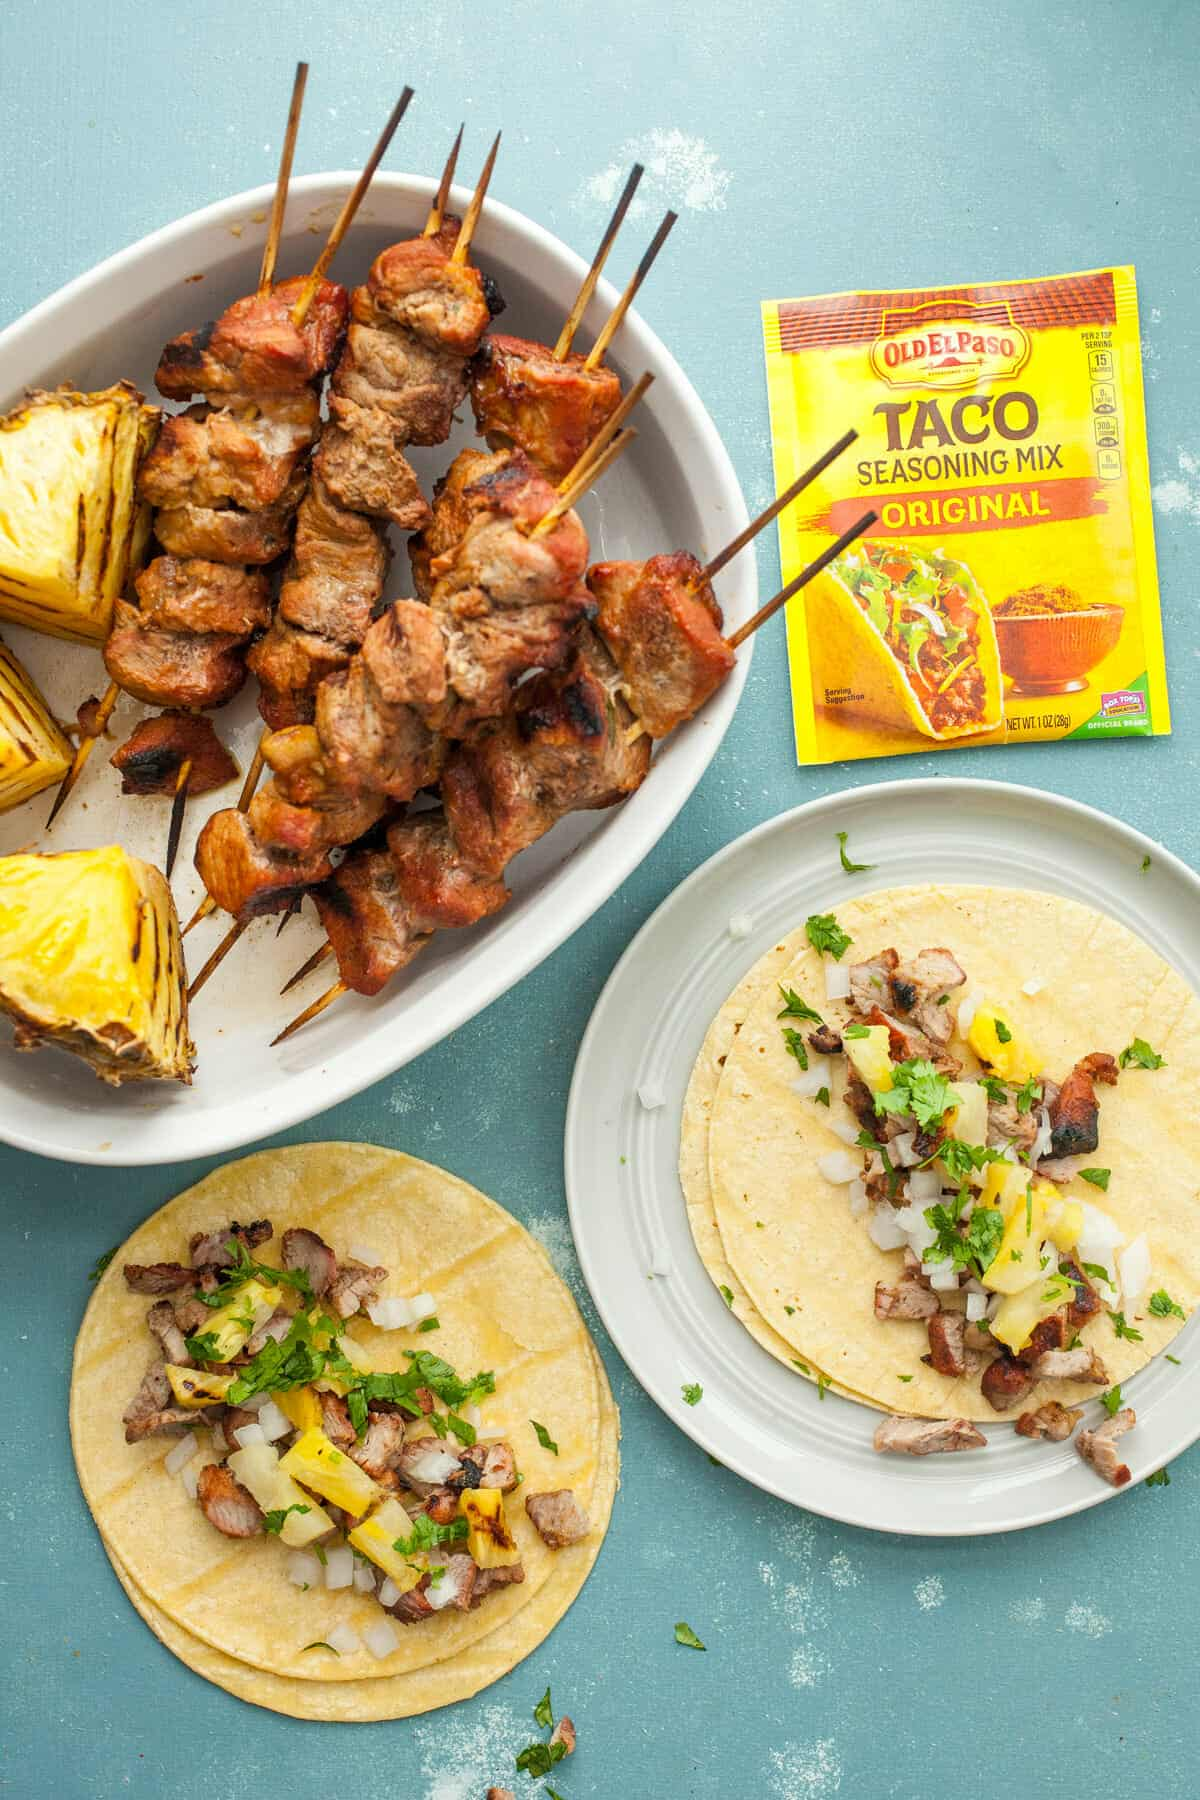 Tacos Al Pastor Kabobs: These marinated pork tacos have all classic flavors of Tacos Al Pastor without so much work. If you're a taco lover, this is a must try! | macheesmo.com